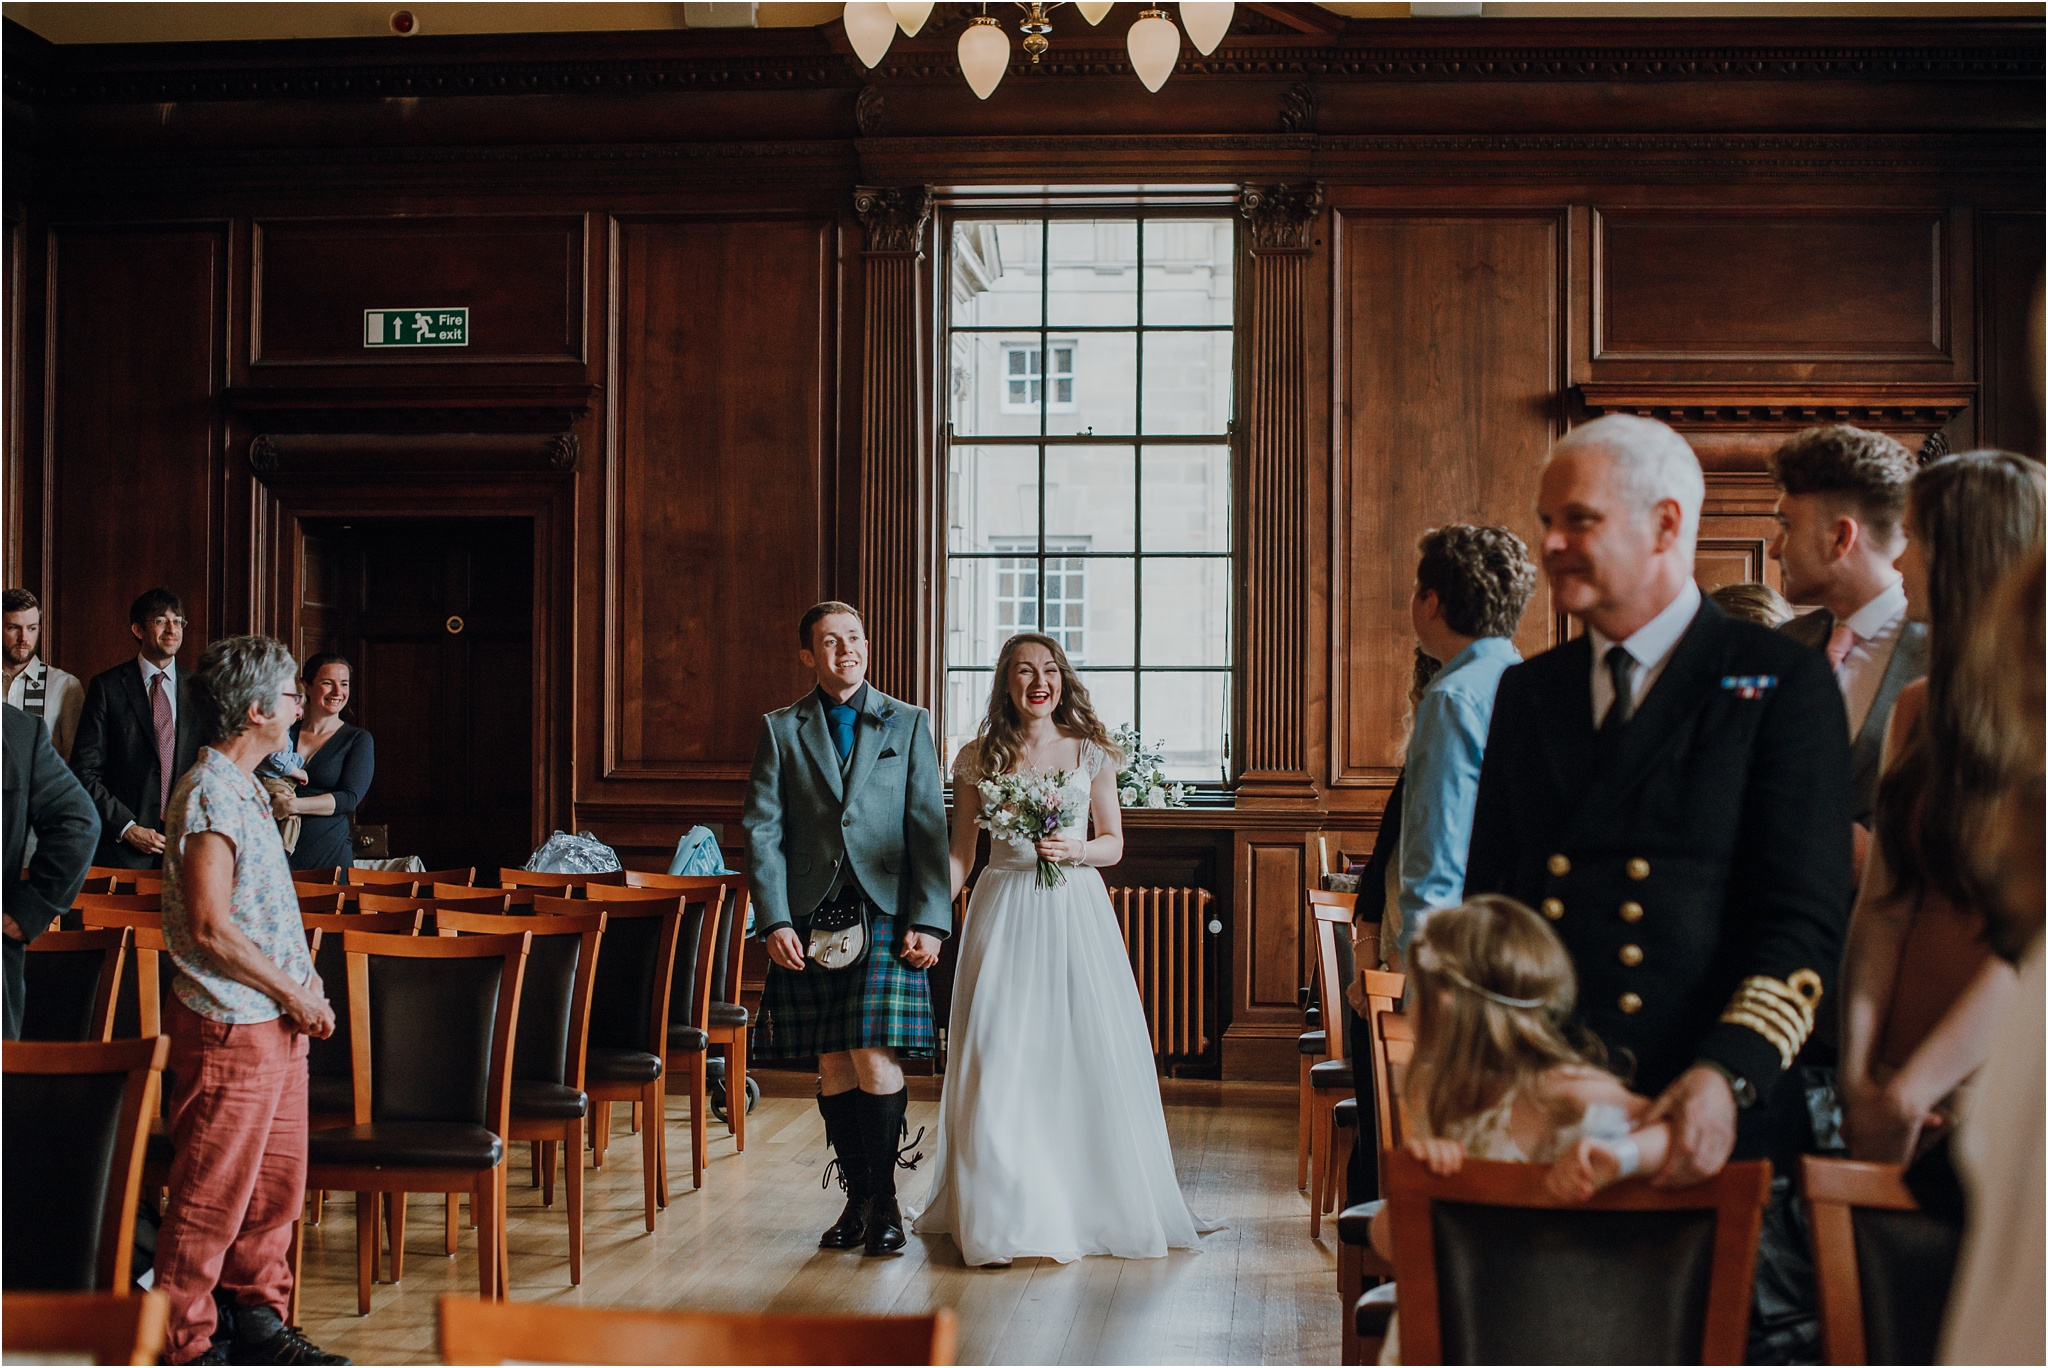 Edinburgh-wedding-photographer_7.jpg